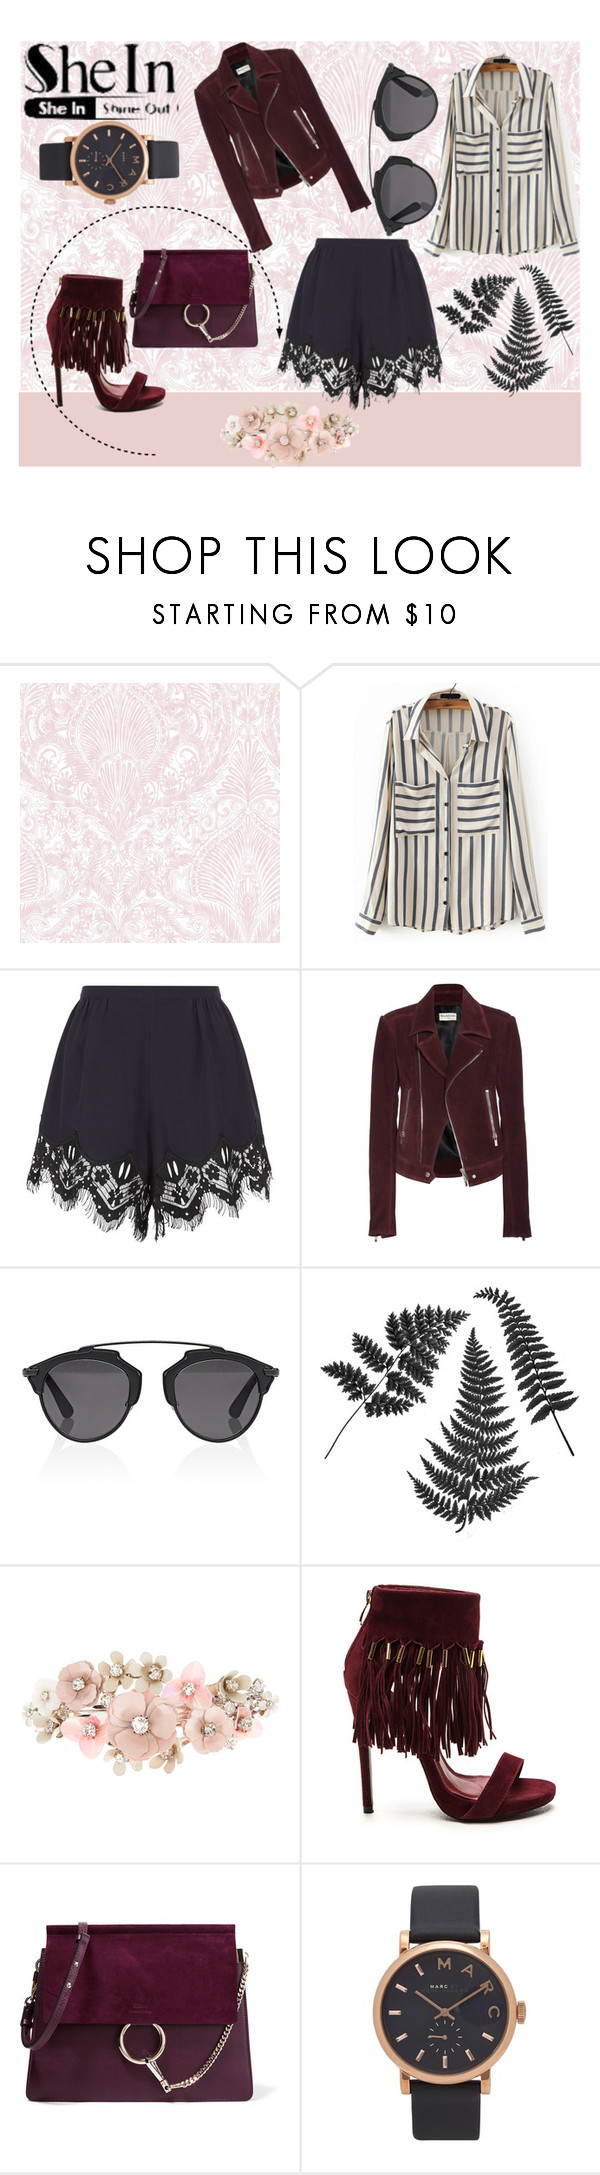 """Lovely Fashion"" by nadina-2001 ❤ liked on Polyvore featuring Chloé, Balenciaga, Christian Dior, Accessorize and Marc Jacobs"